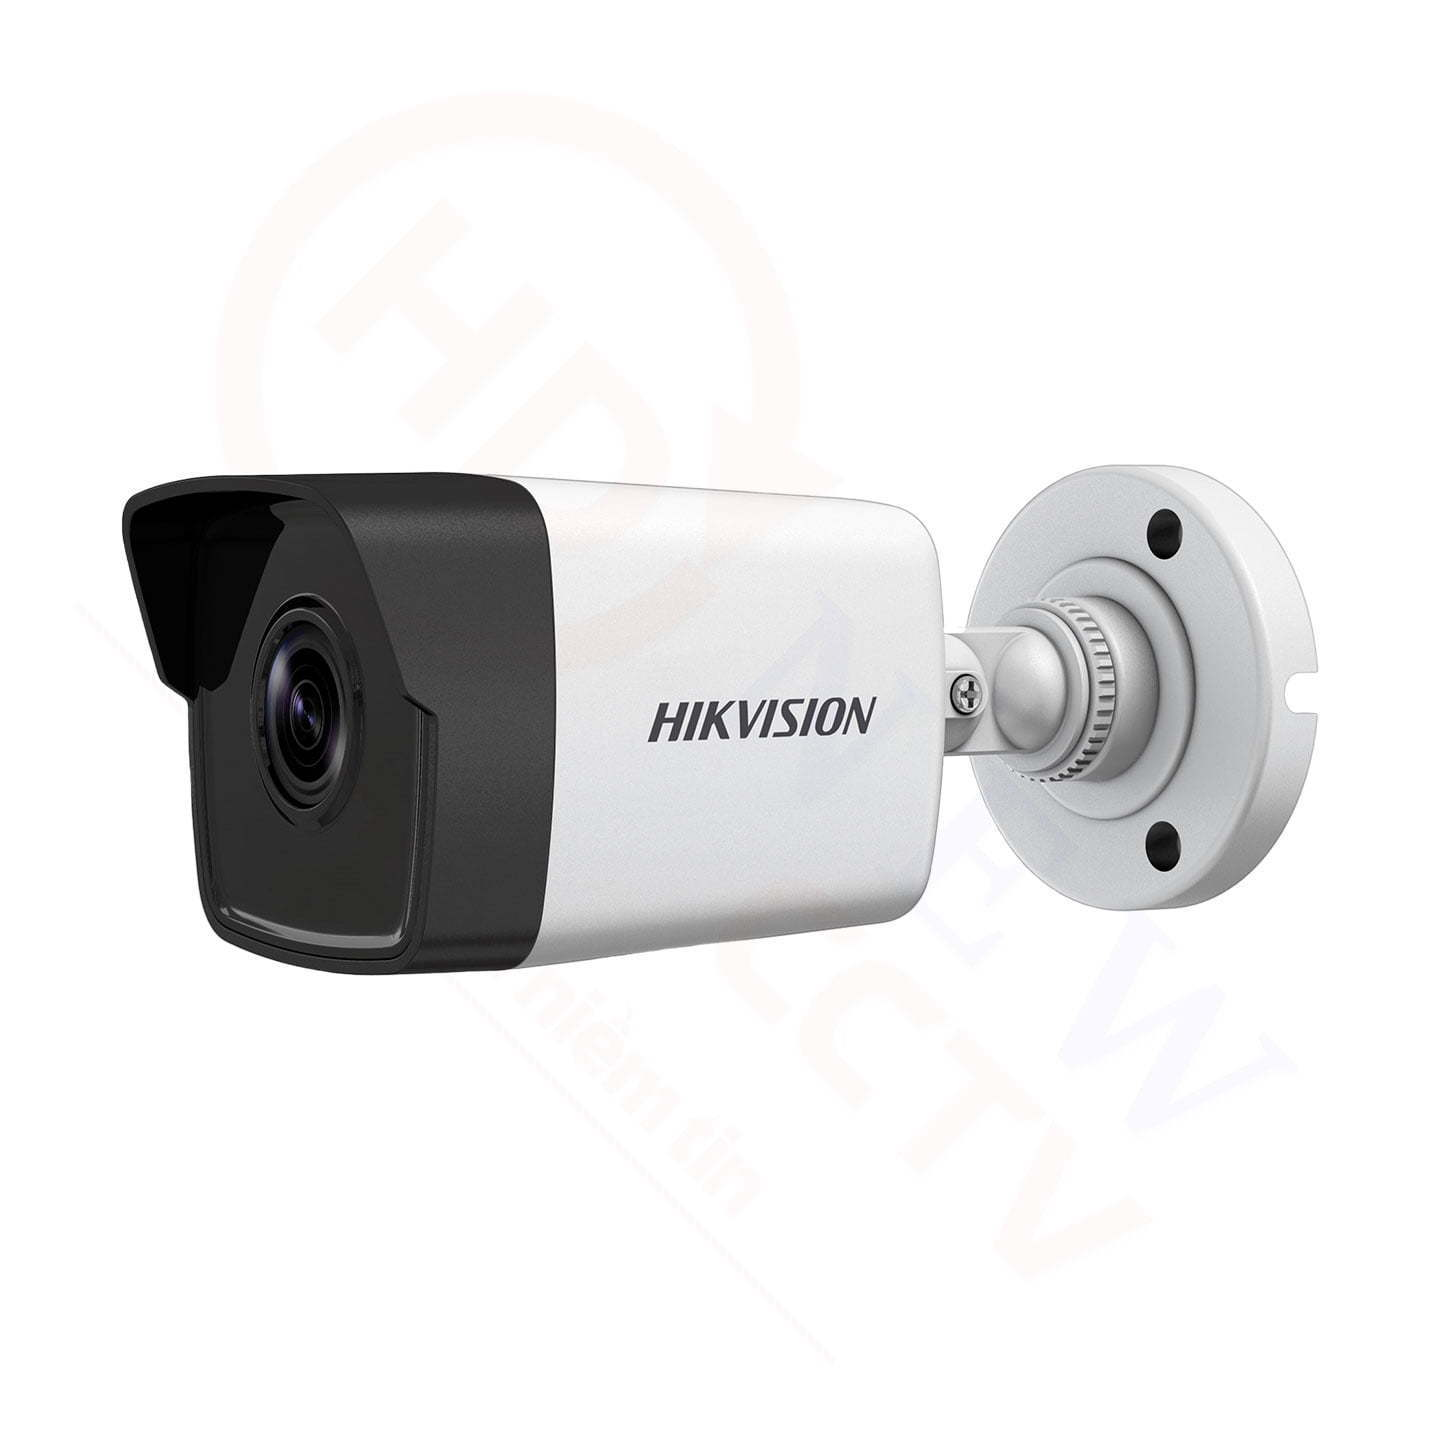 Hikvision DS-2CD1043G0E-IF | 4MP IP PoE Bullet Camera | HDnew CCTV